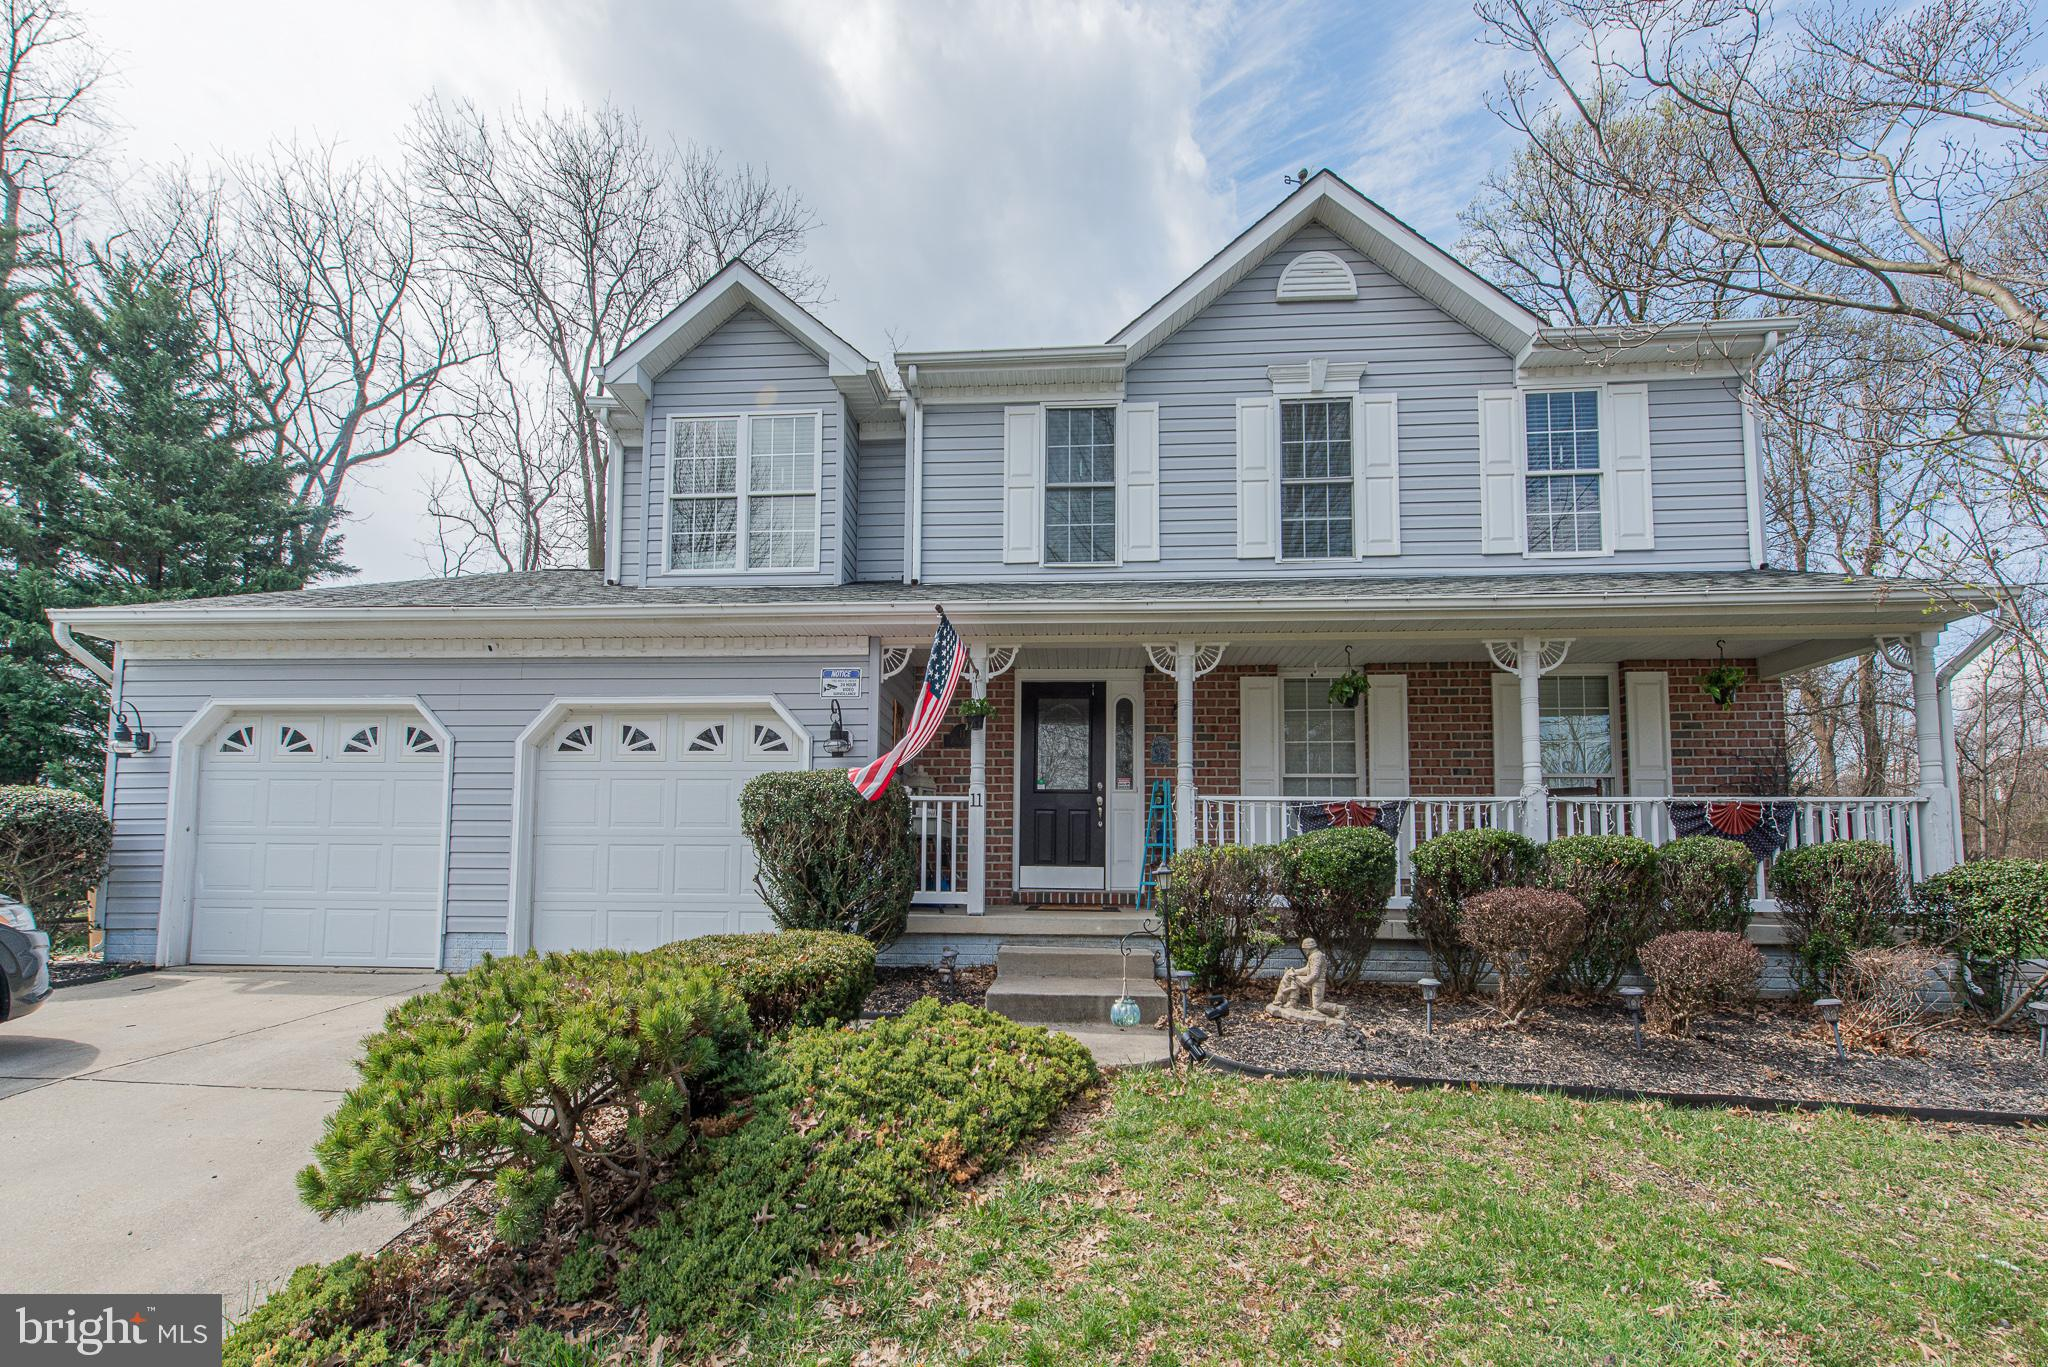 11 PENNY LANE, PERRYVILLE, MD 21903